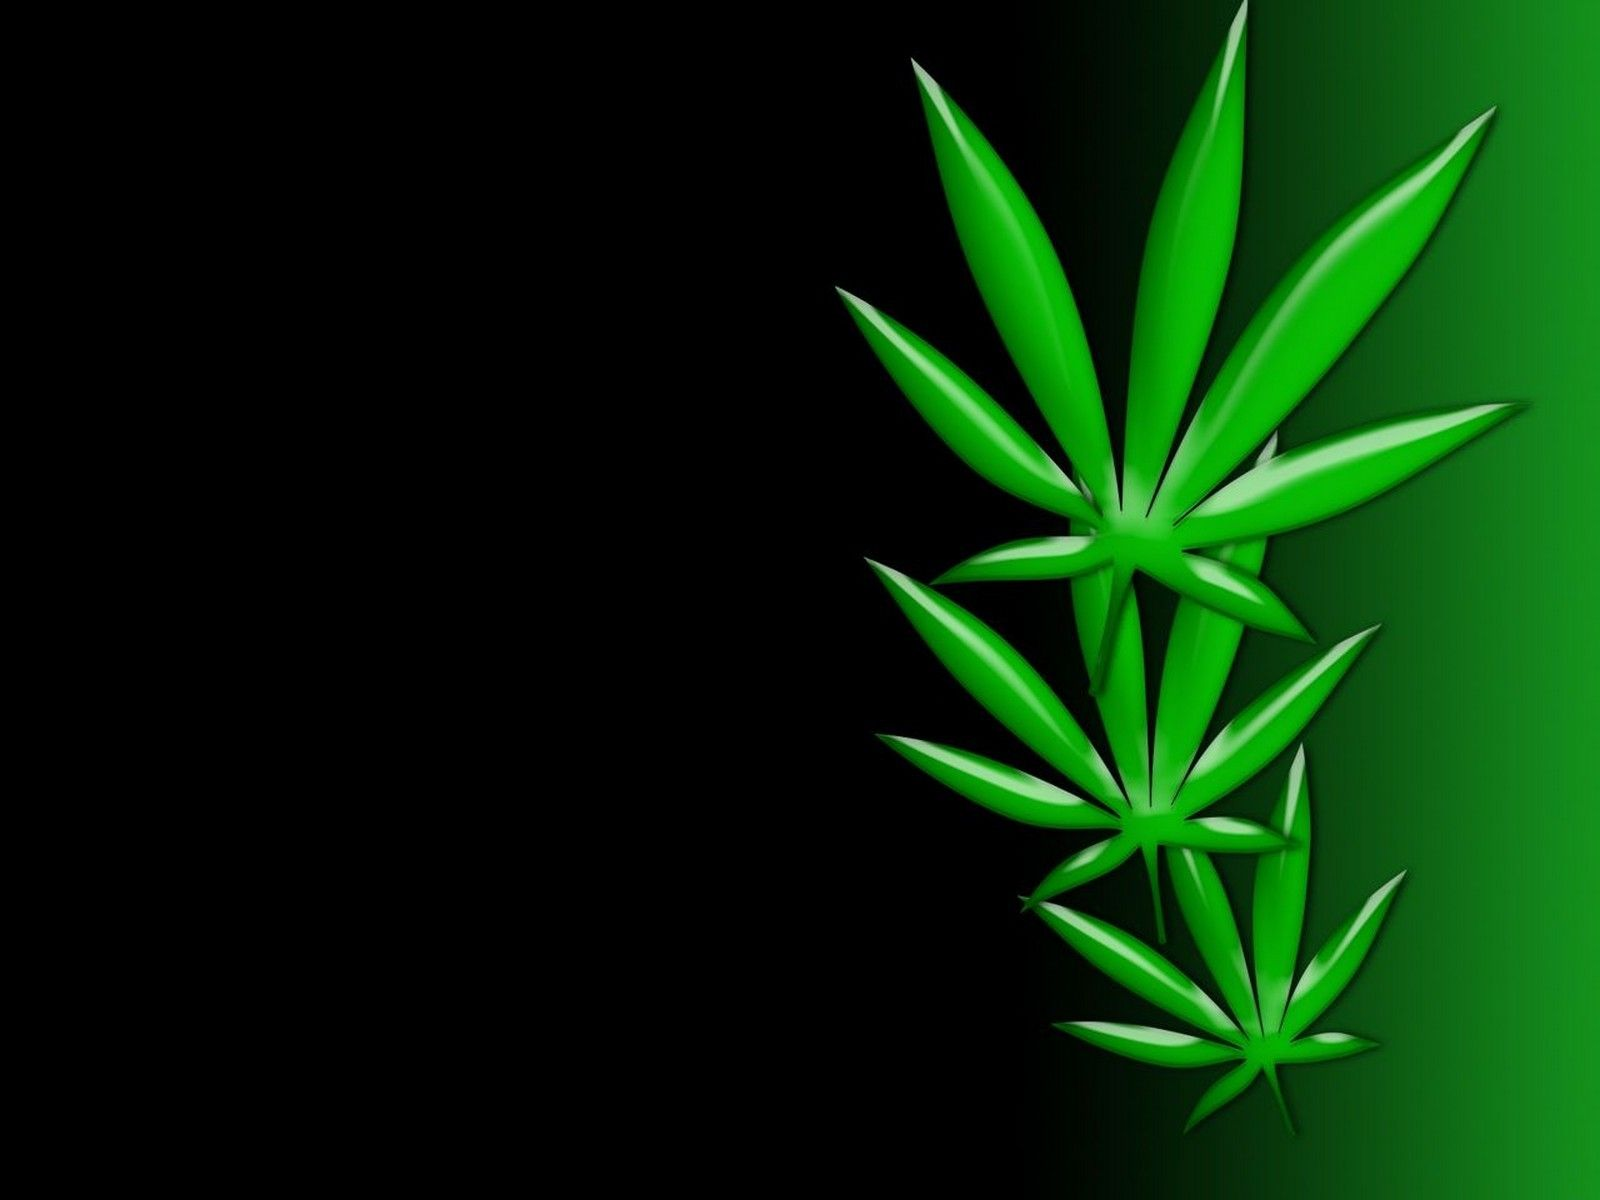 Weed Poster Wallpaper Art Black backgrounds, Wallpaper